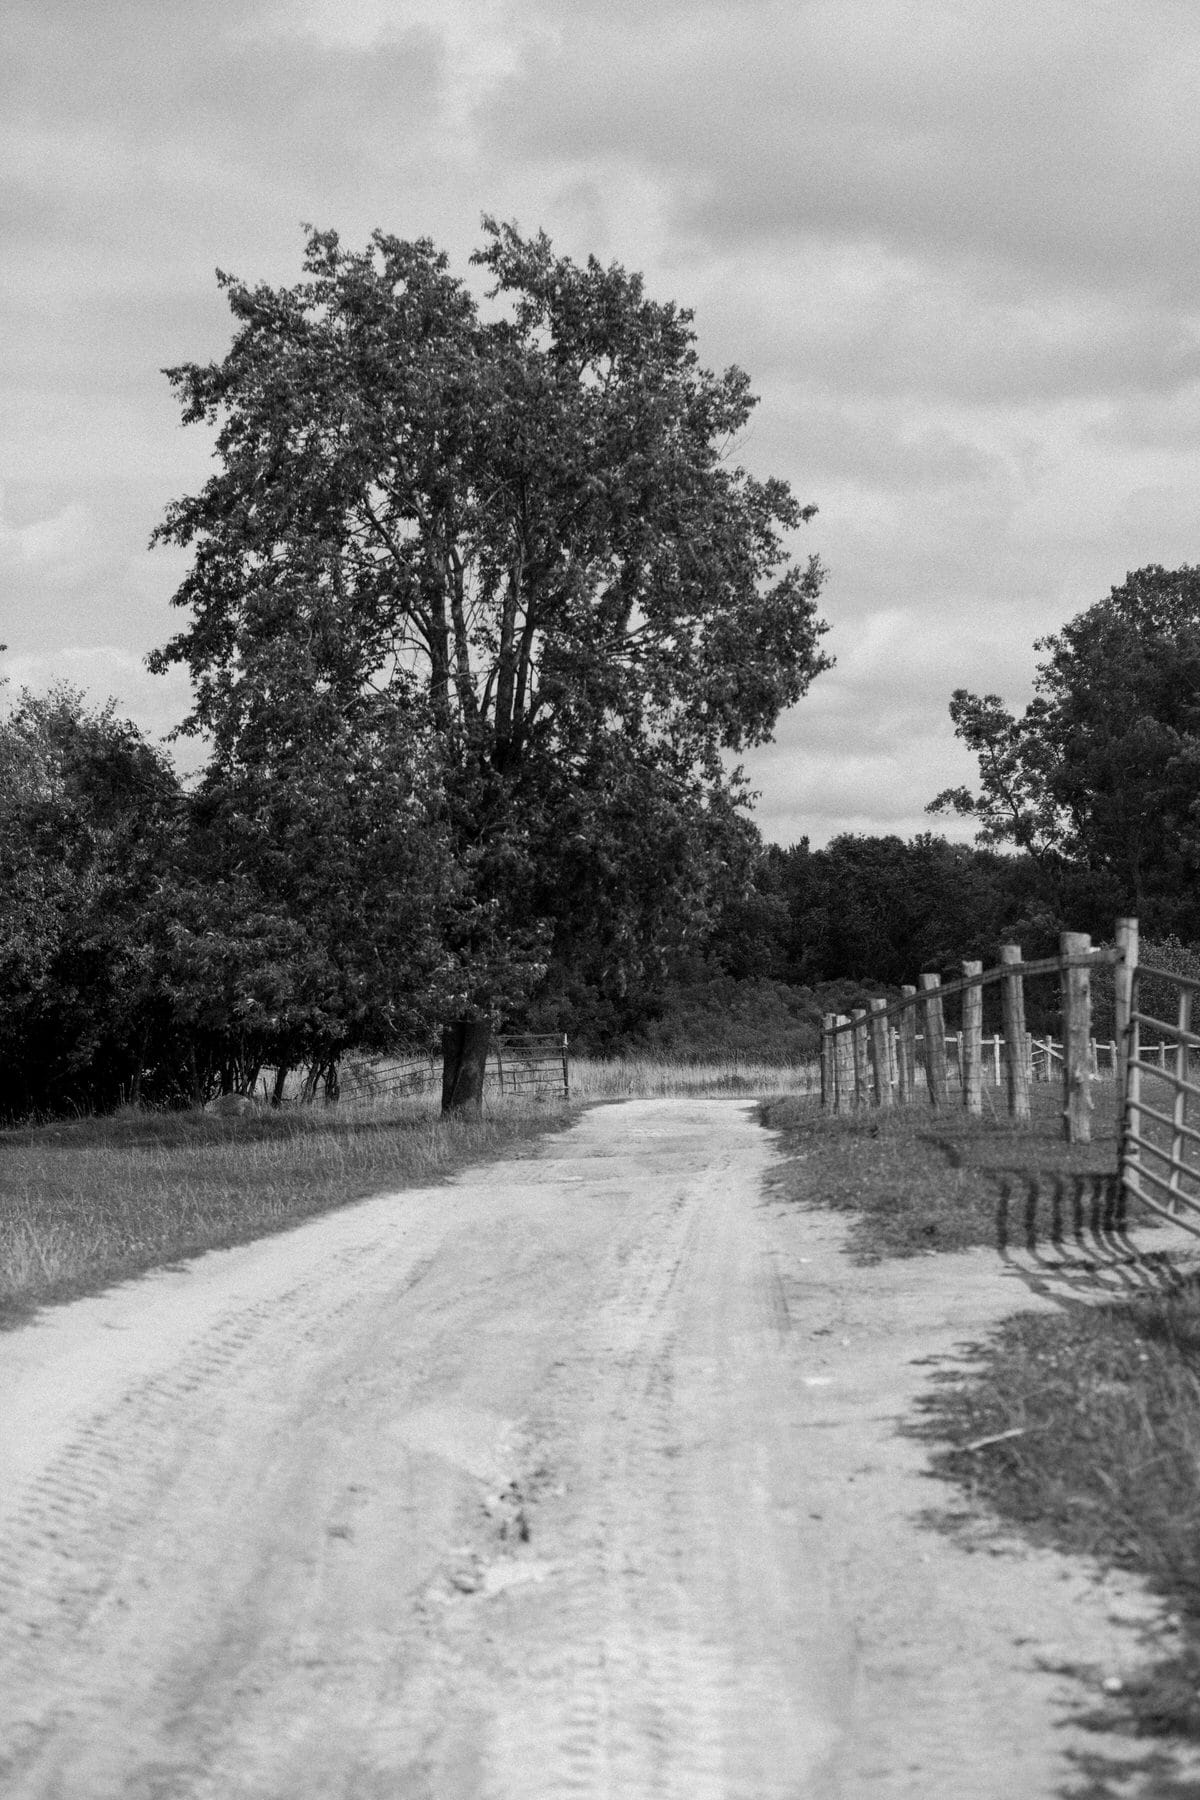 Cristo-Rey-Ranch-Wisconsin-black-and-white-fine-art-photography-by-Studio-L-photographer-Laura-Schneider-_1879